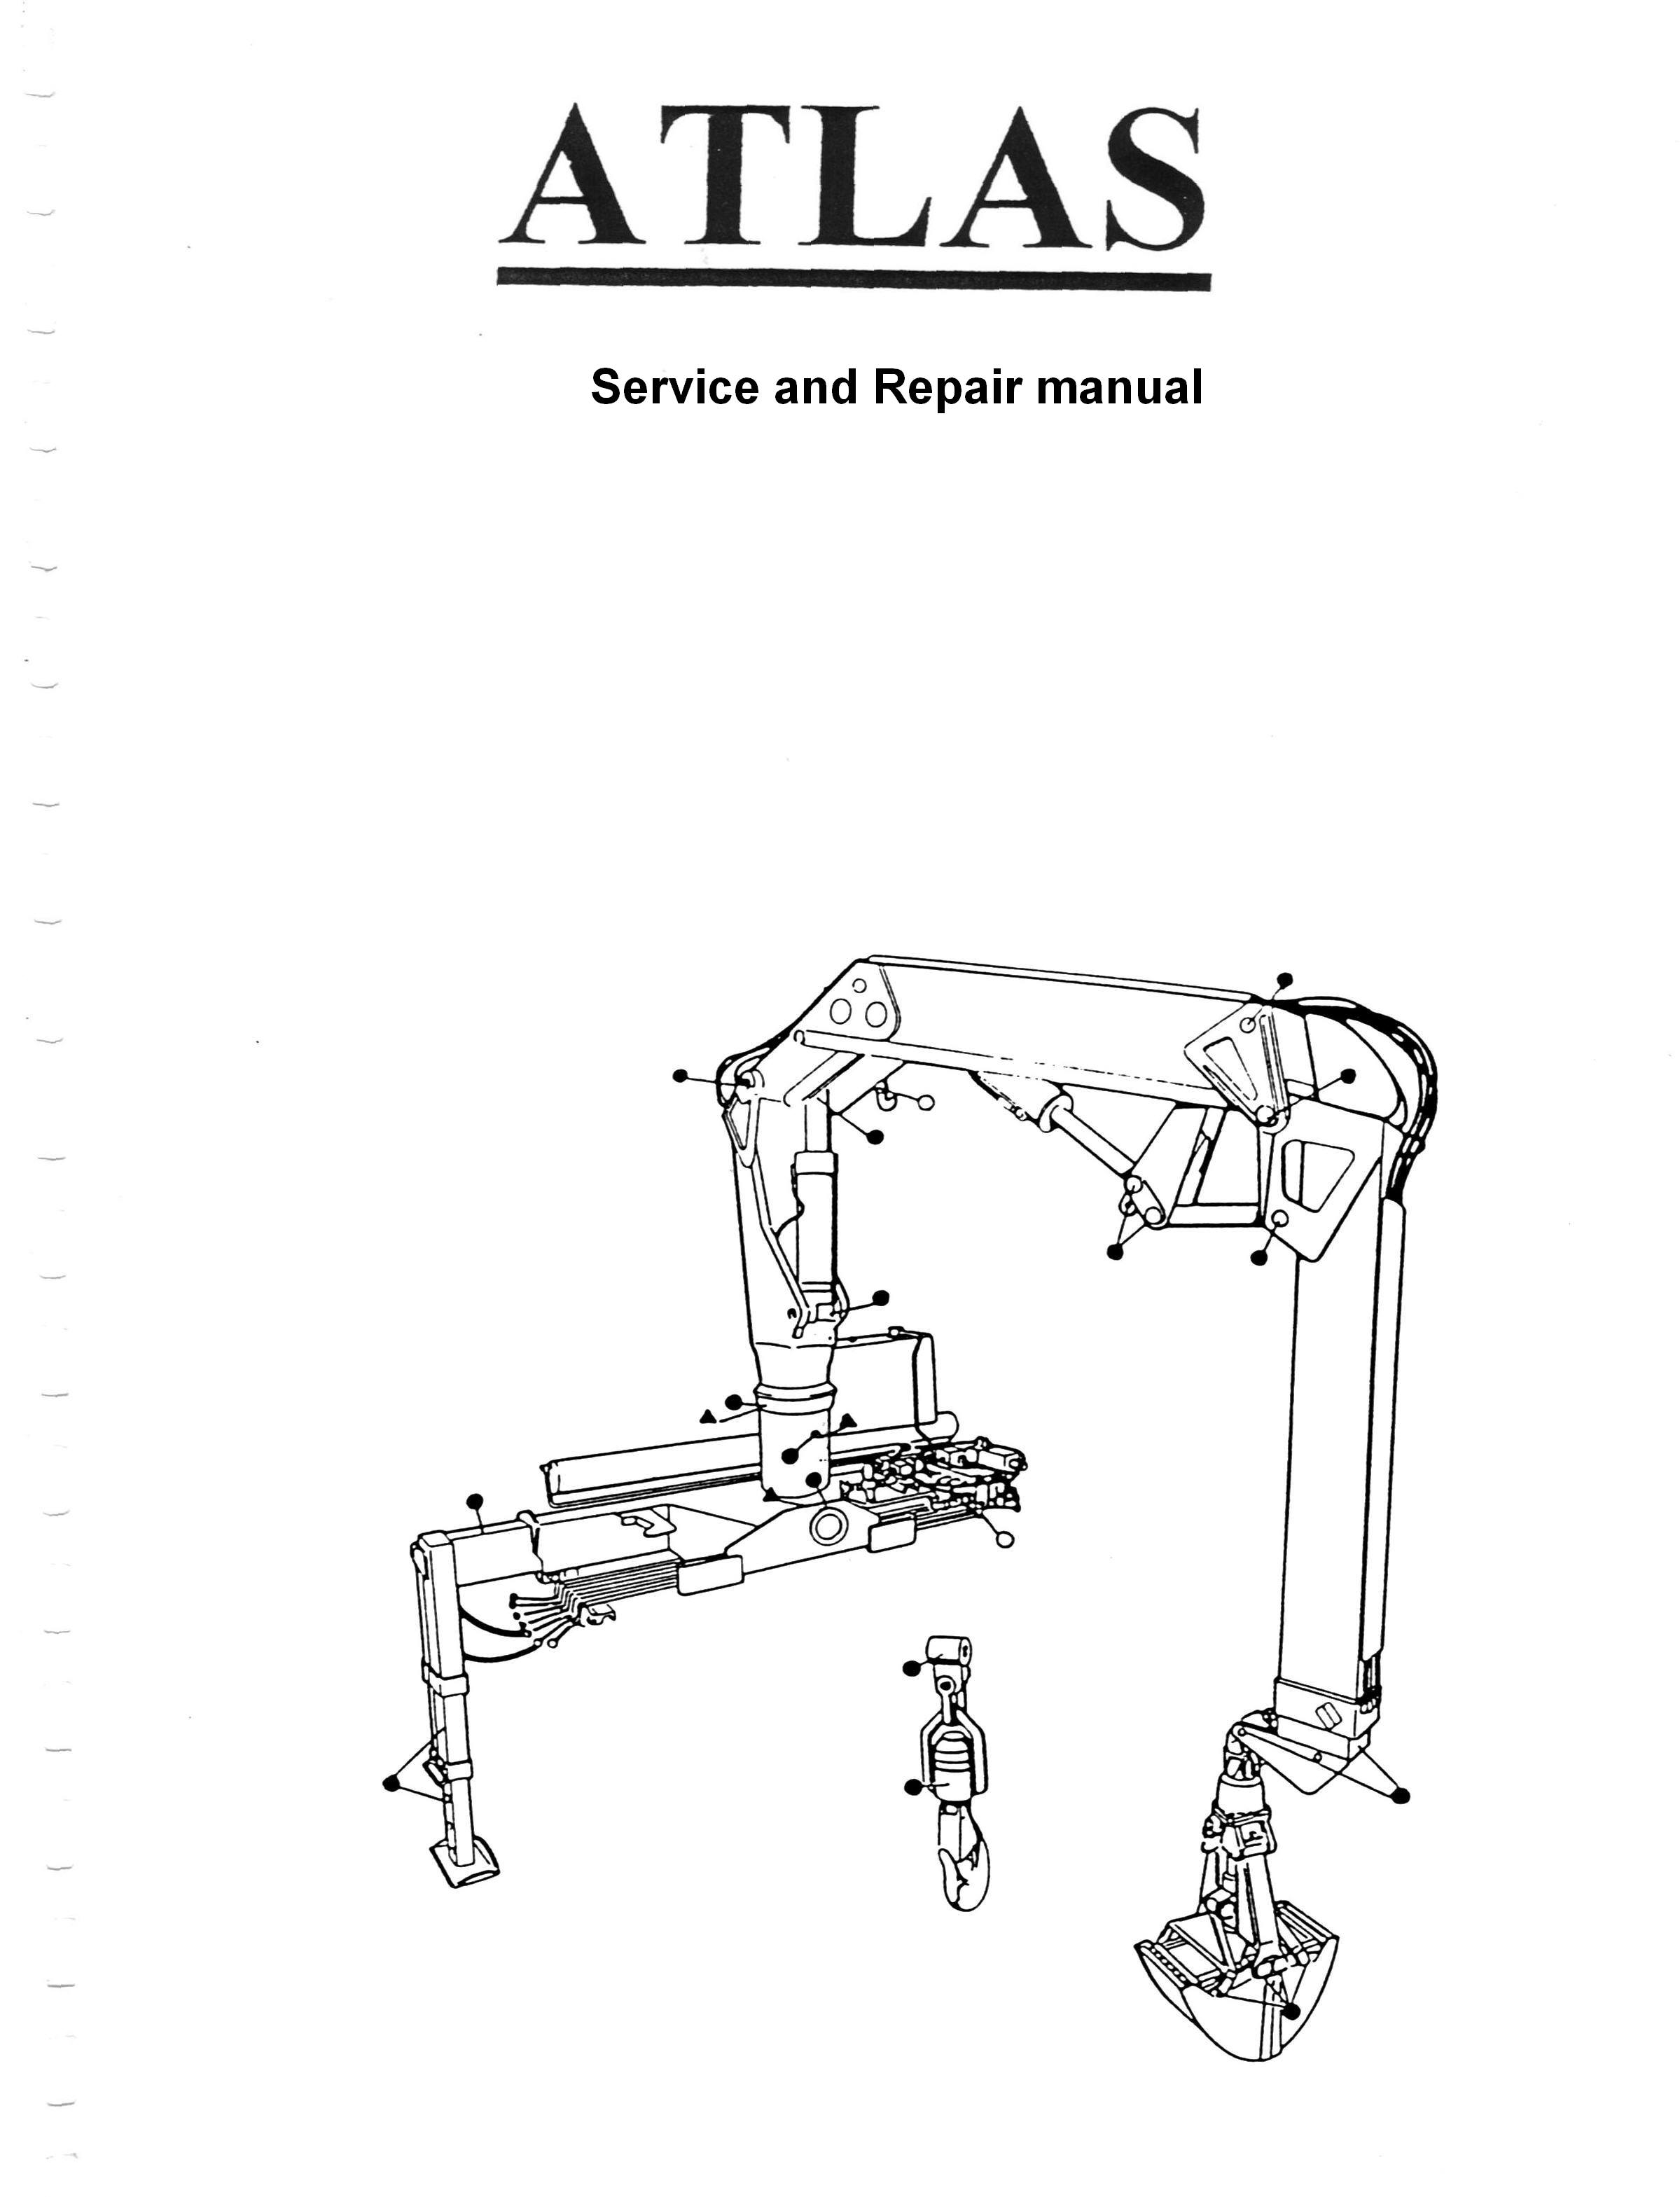 Pitman crane service manual ebook array atlas 100 0 crane service manual ebooks automotive rh store payloadz fandeluxe Choice Image